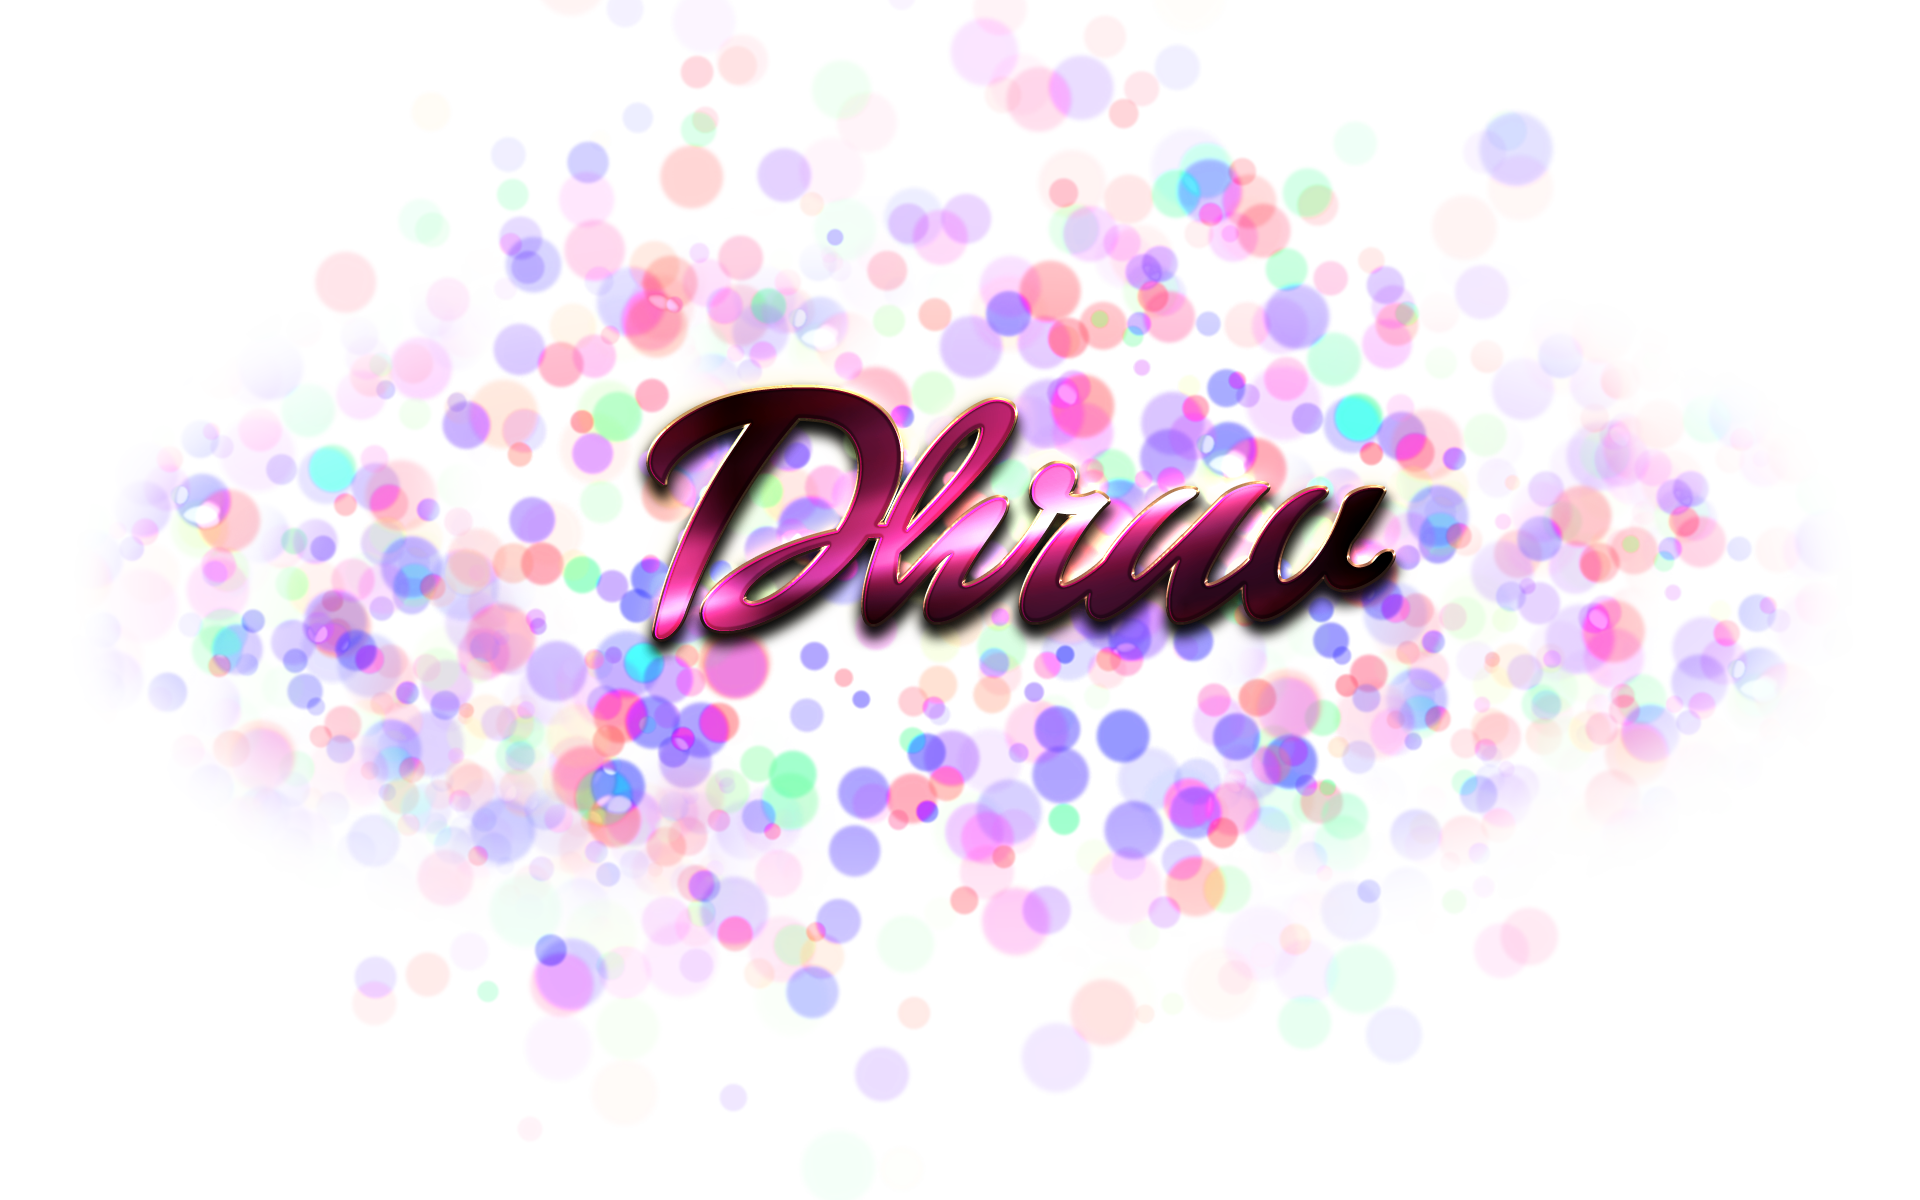 Bokeh vector diwali. Dhruv name png ready